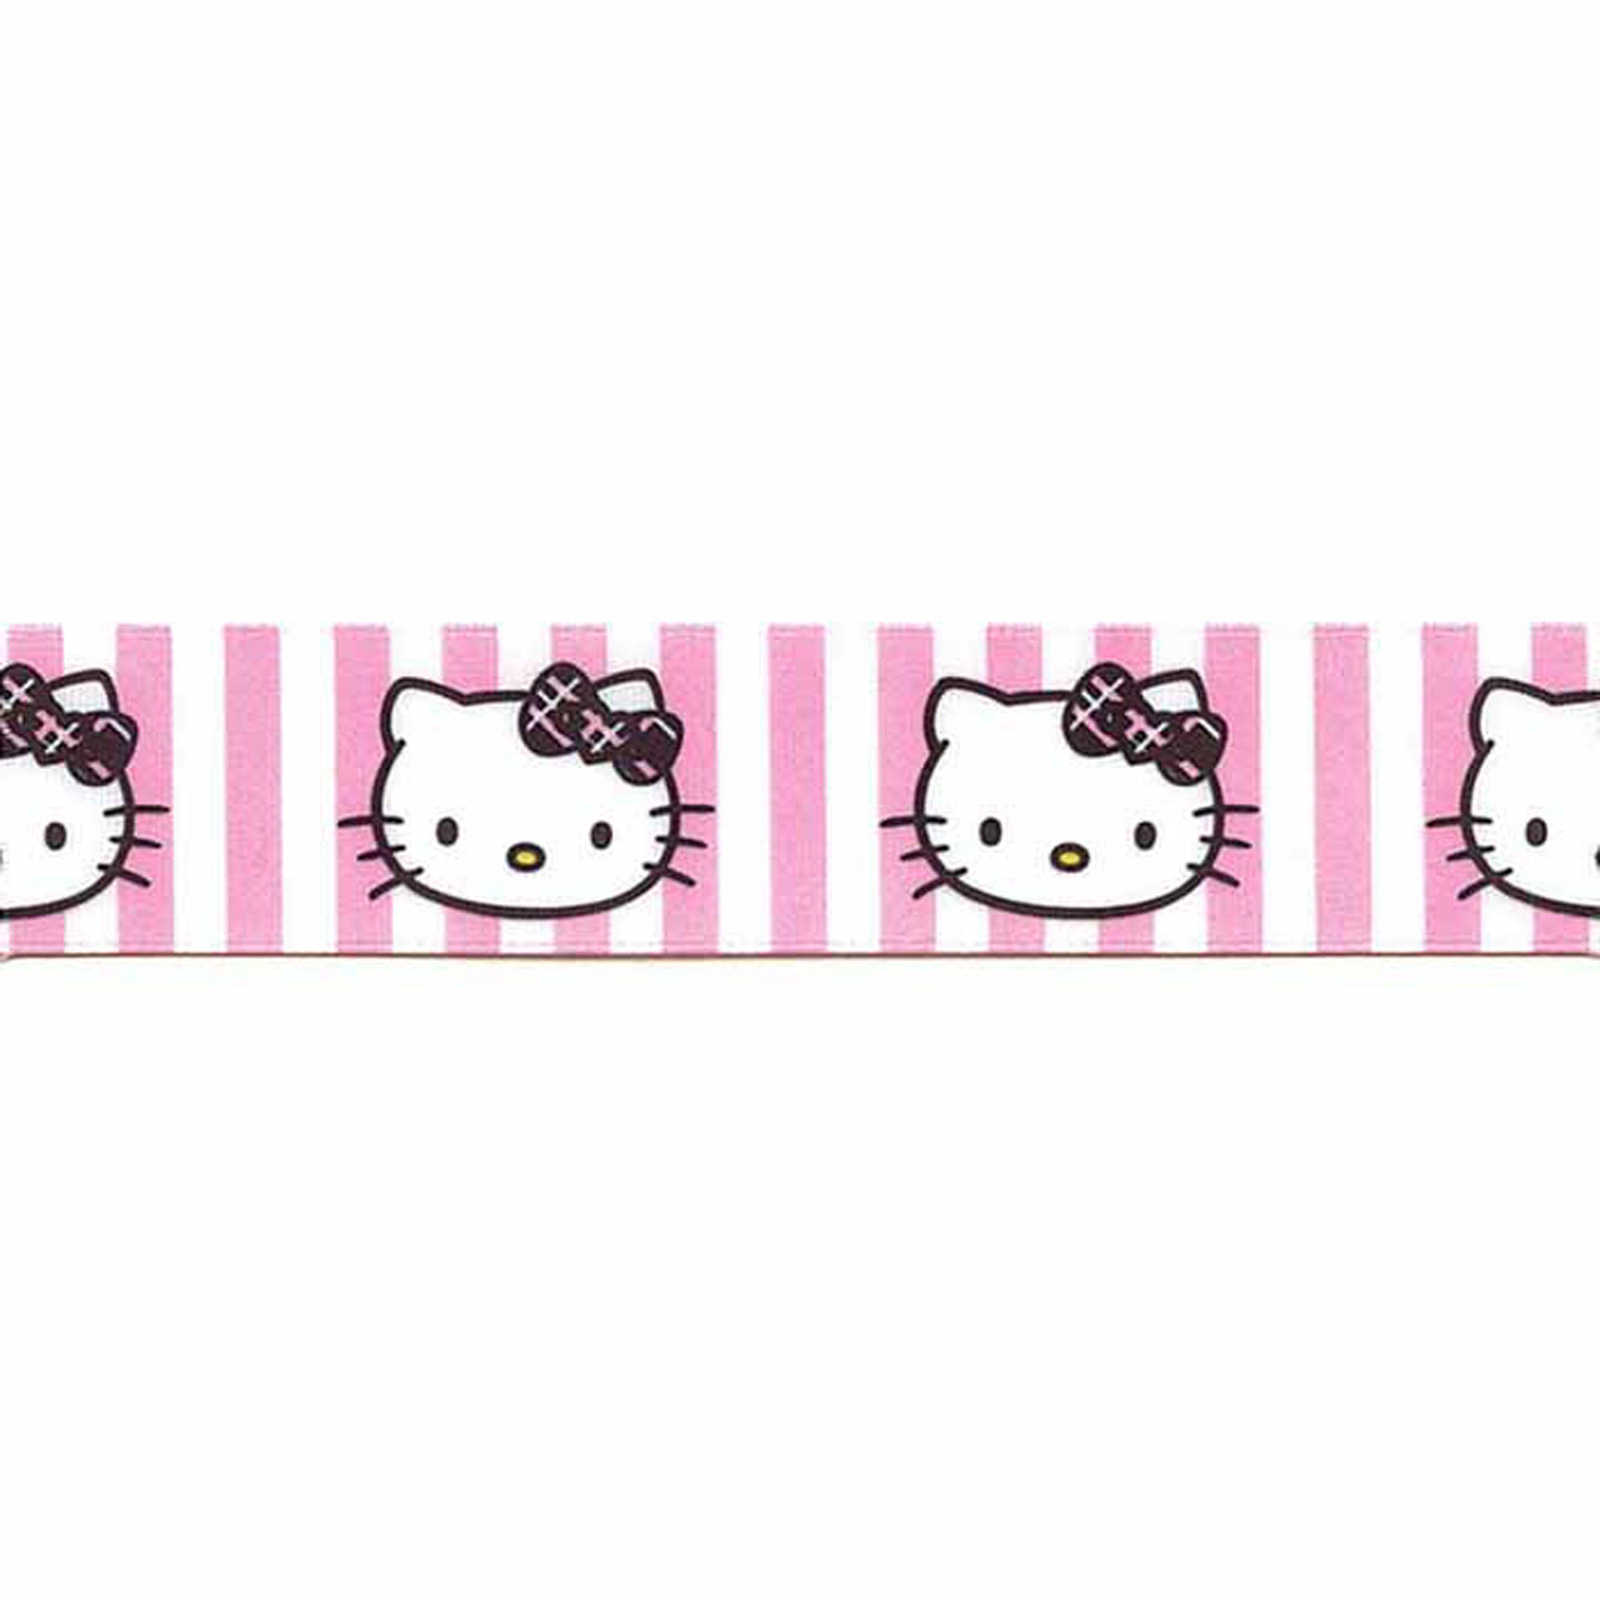 7/8'' Hello Kitty Stripes Ribbon Pink by Stardom Specialty in USA